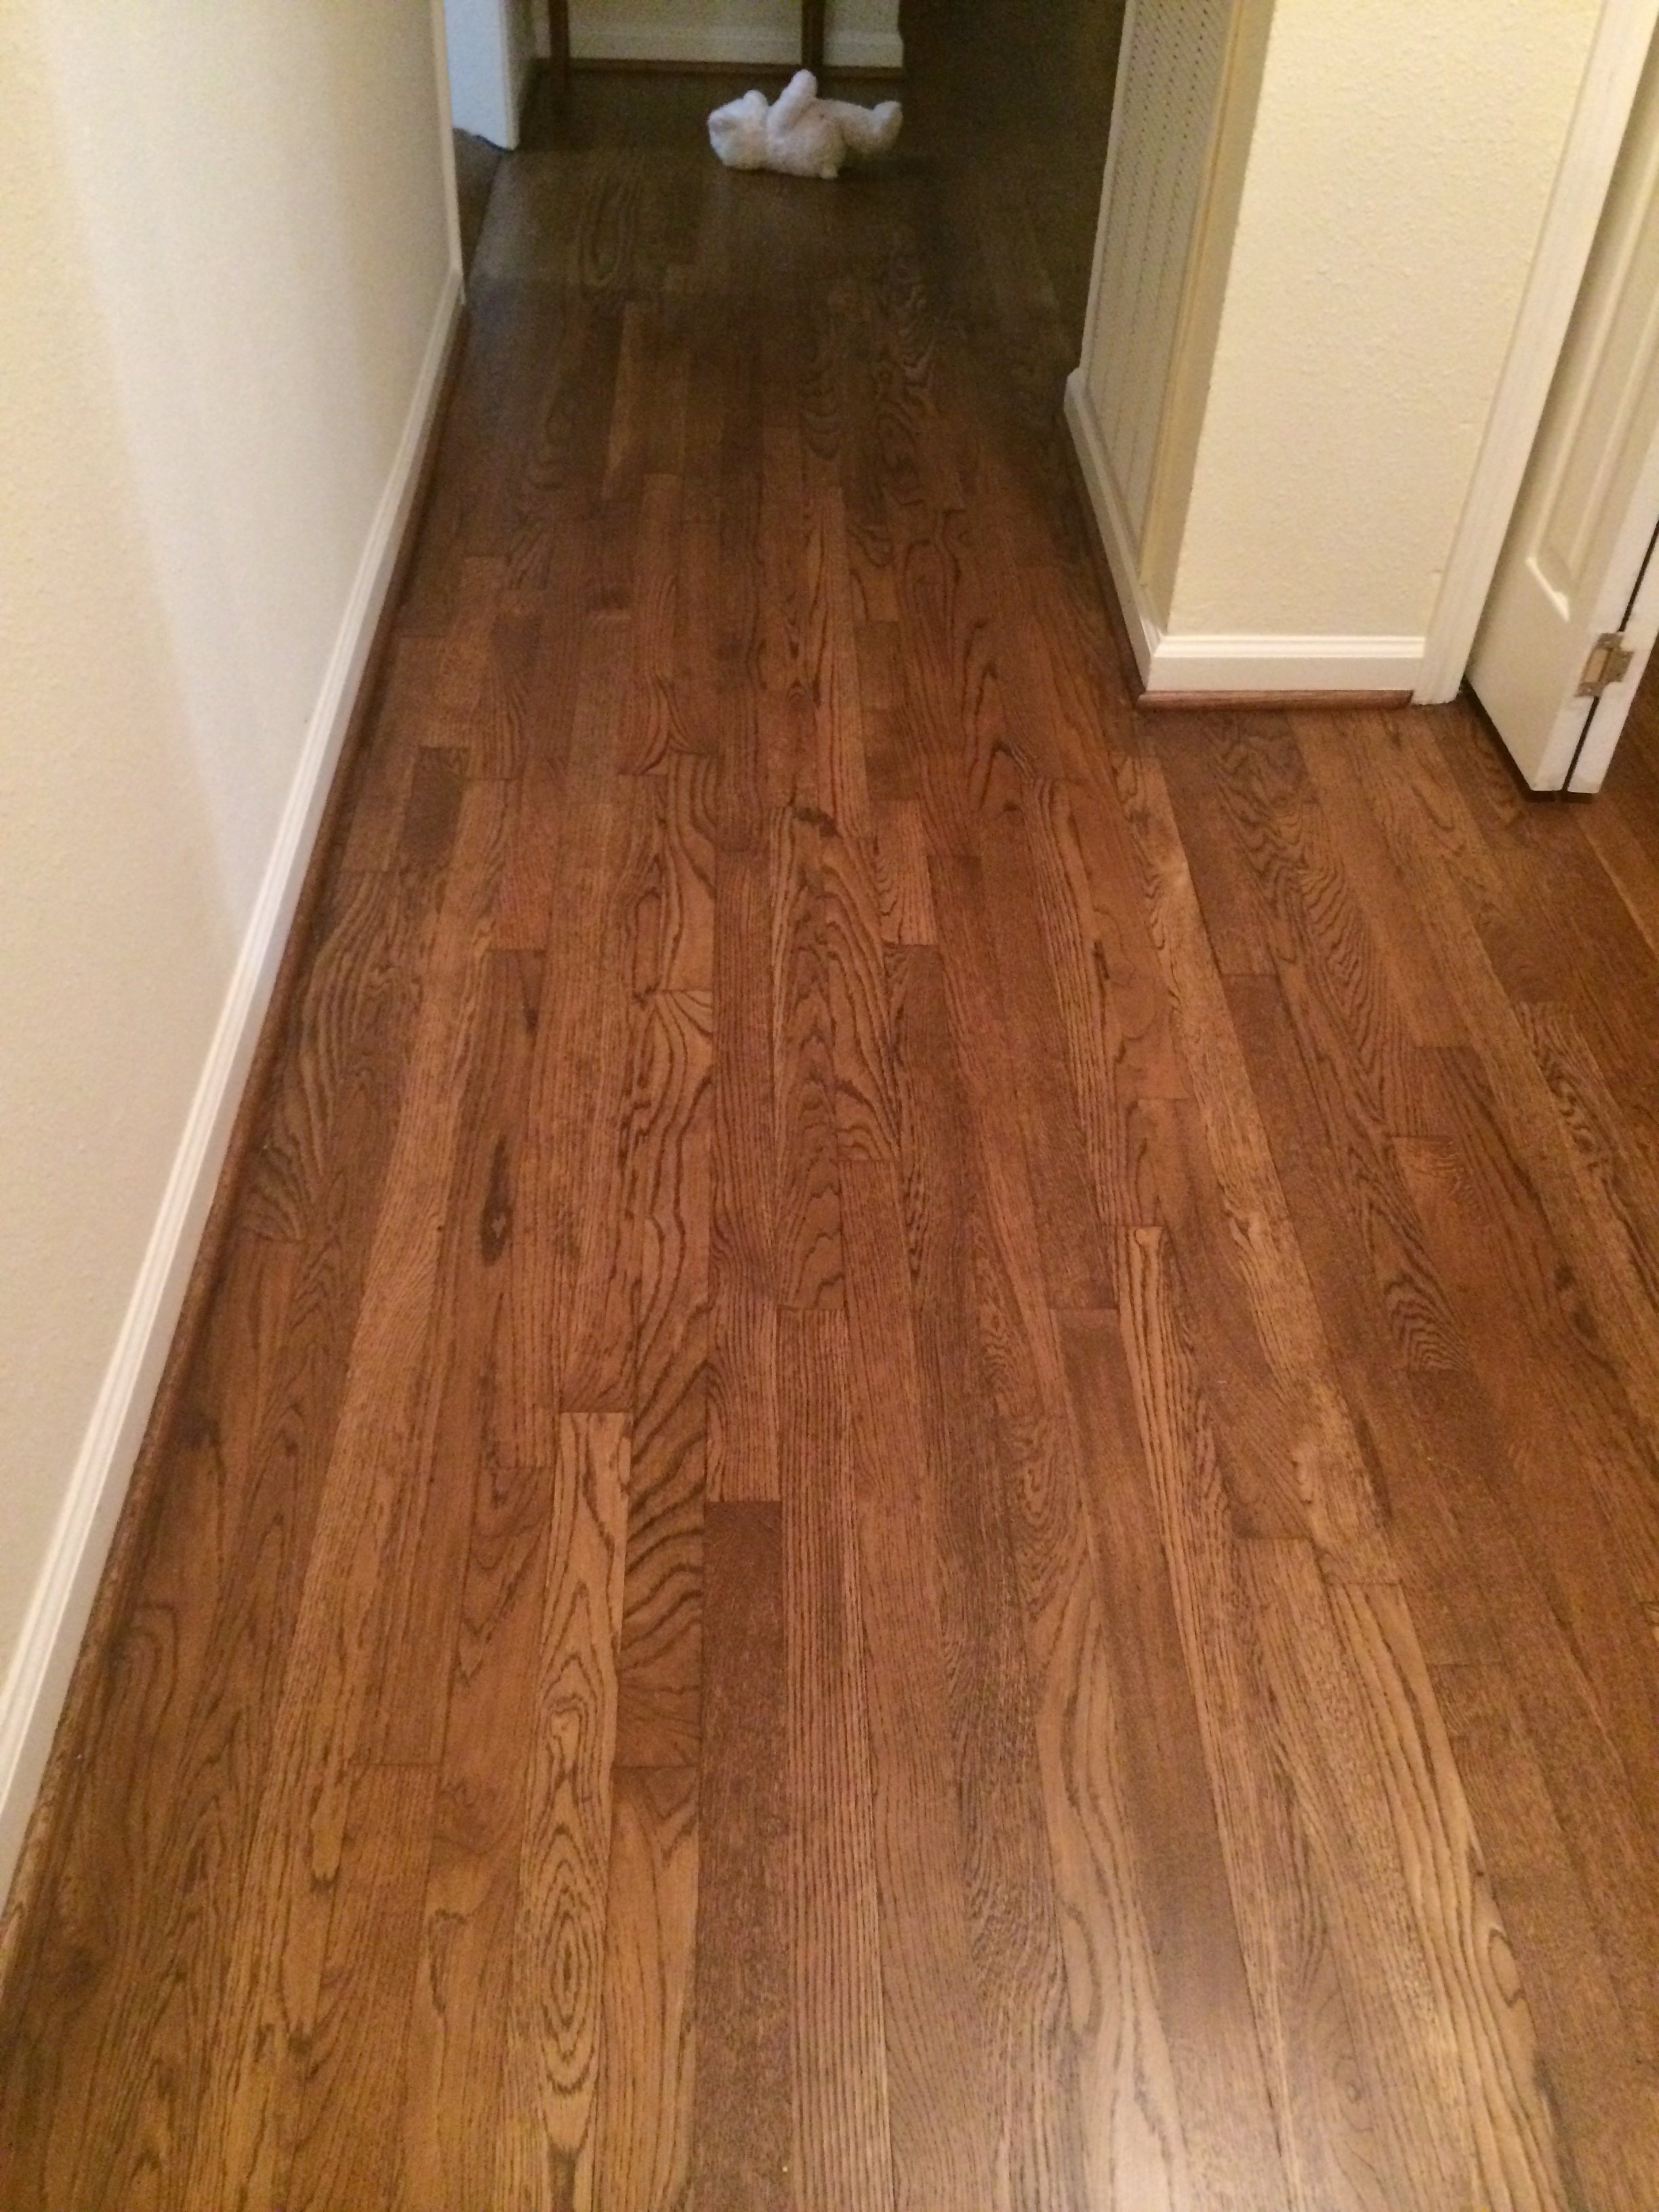 refinish hardwood floors Houston